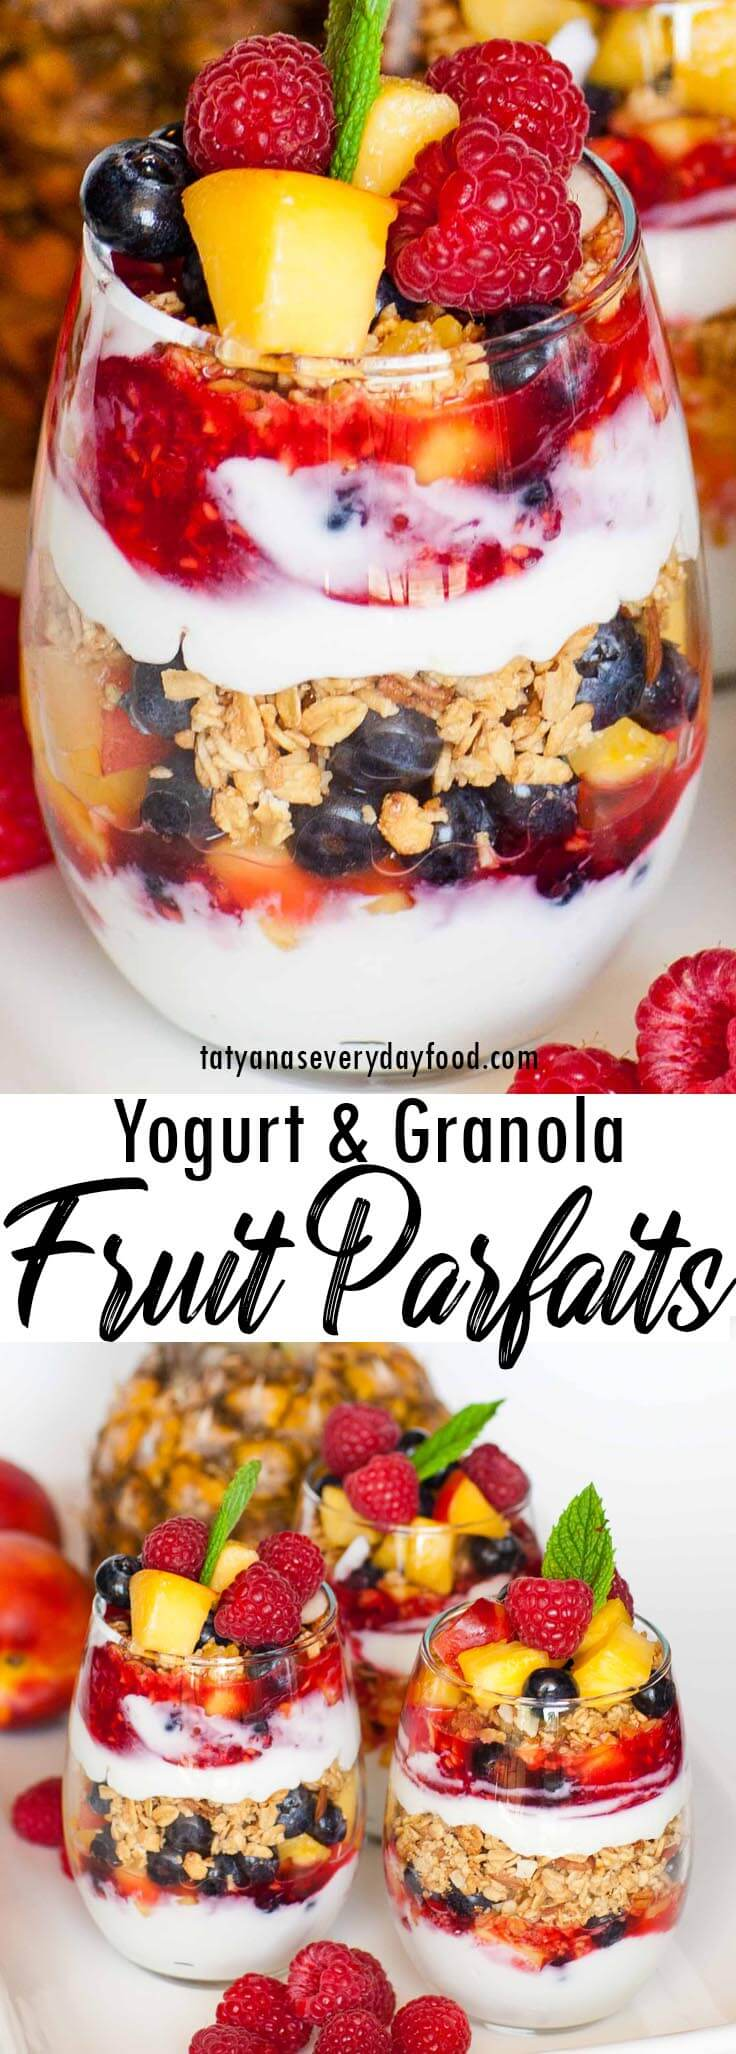 Yogurt & Granola Fruit Parfait video recipe